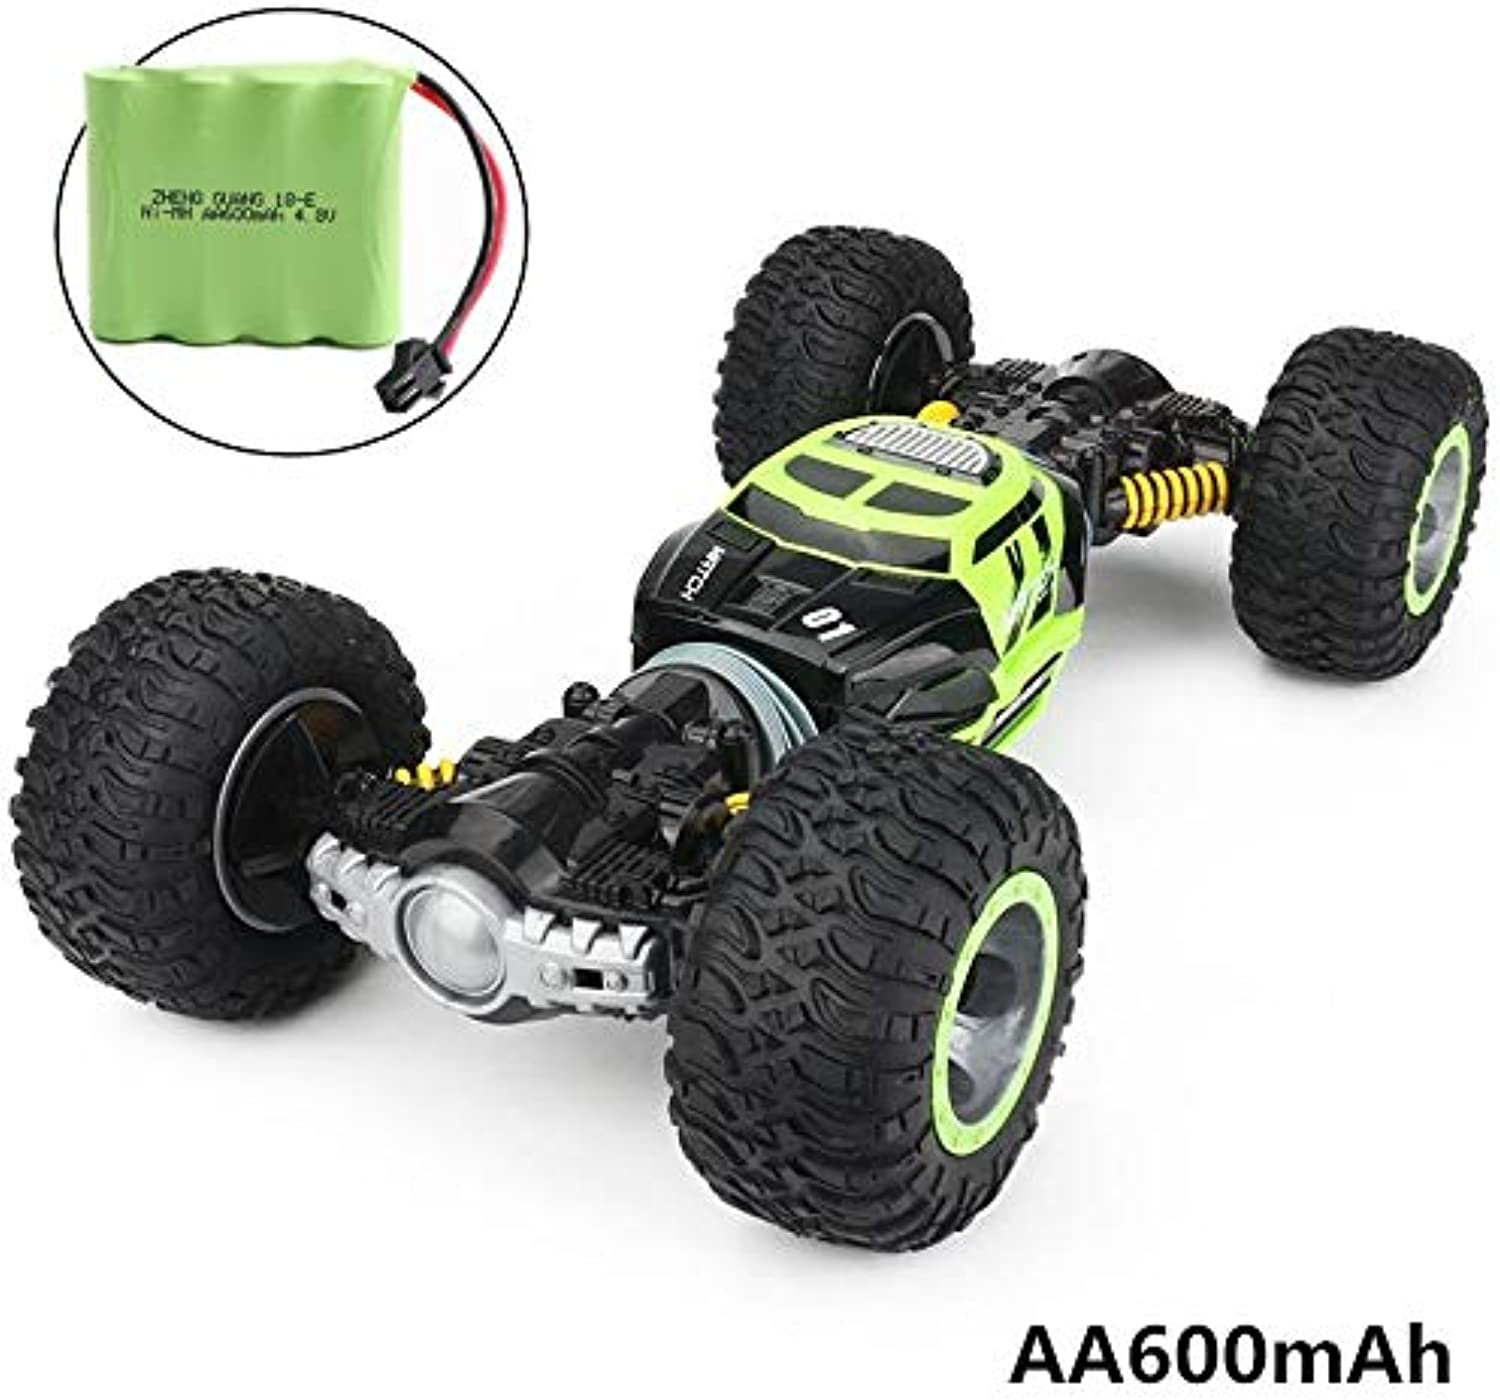 Generic RC Car 4WD Truck Scale DoubleSided 2.4GHz One Key Transformation AllTerrain Vehicle Varanid Climbing Car Remote Control Toys Green 600mAh